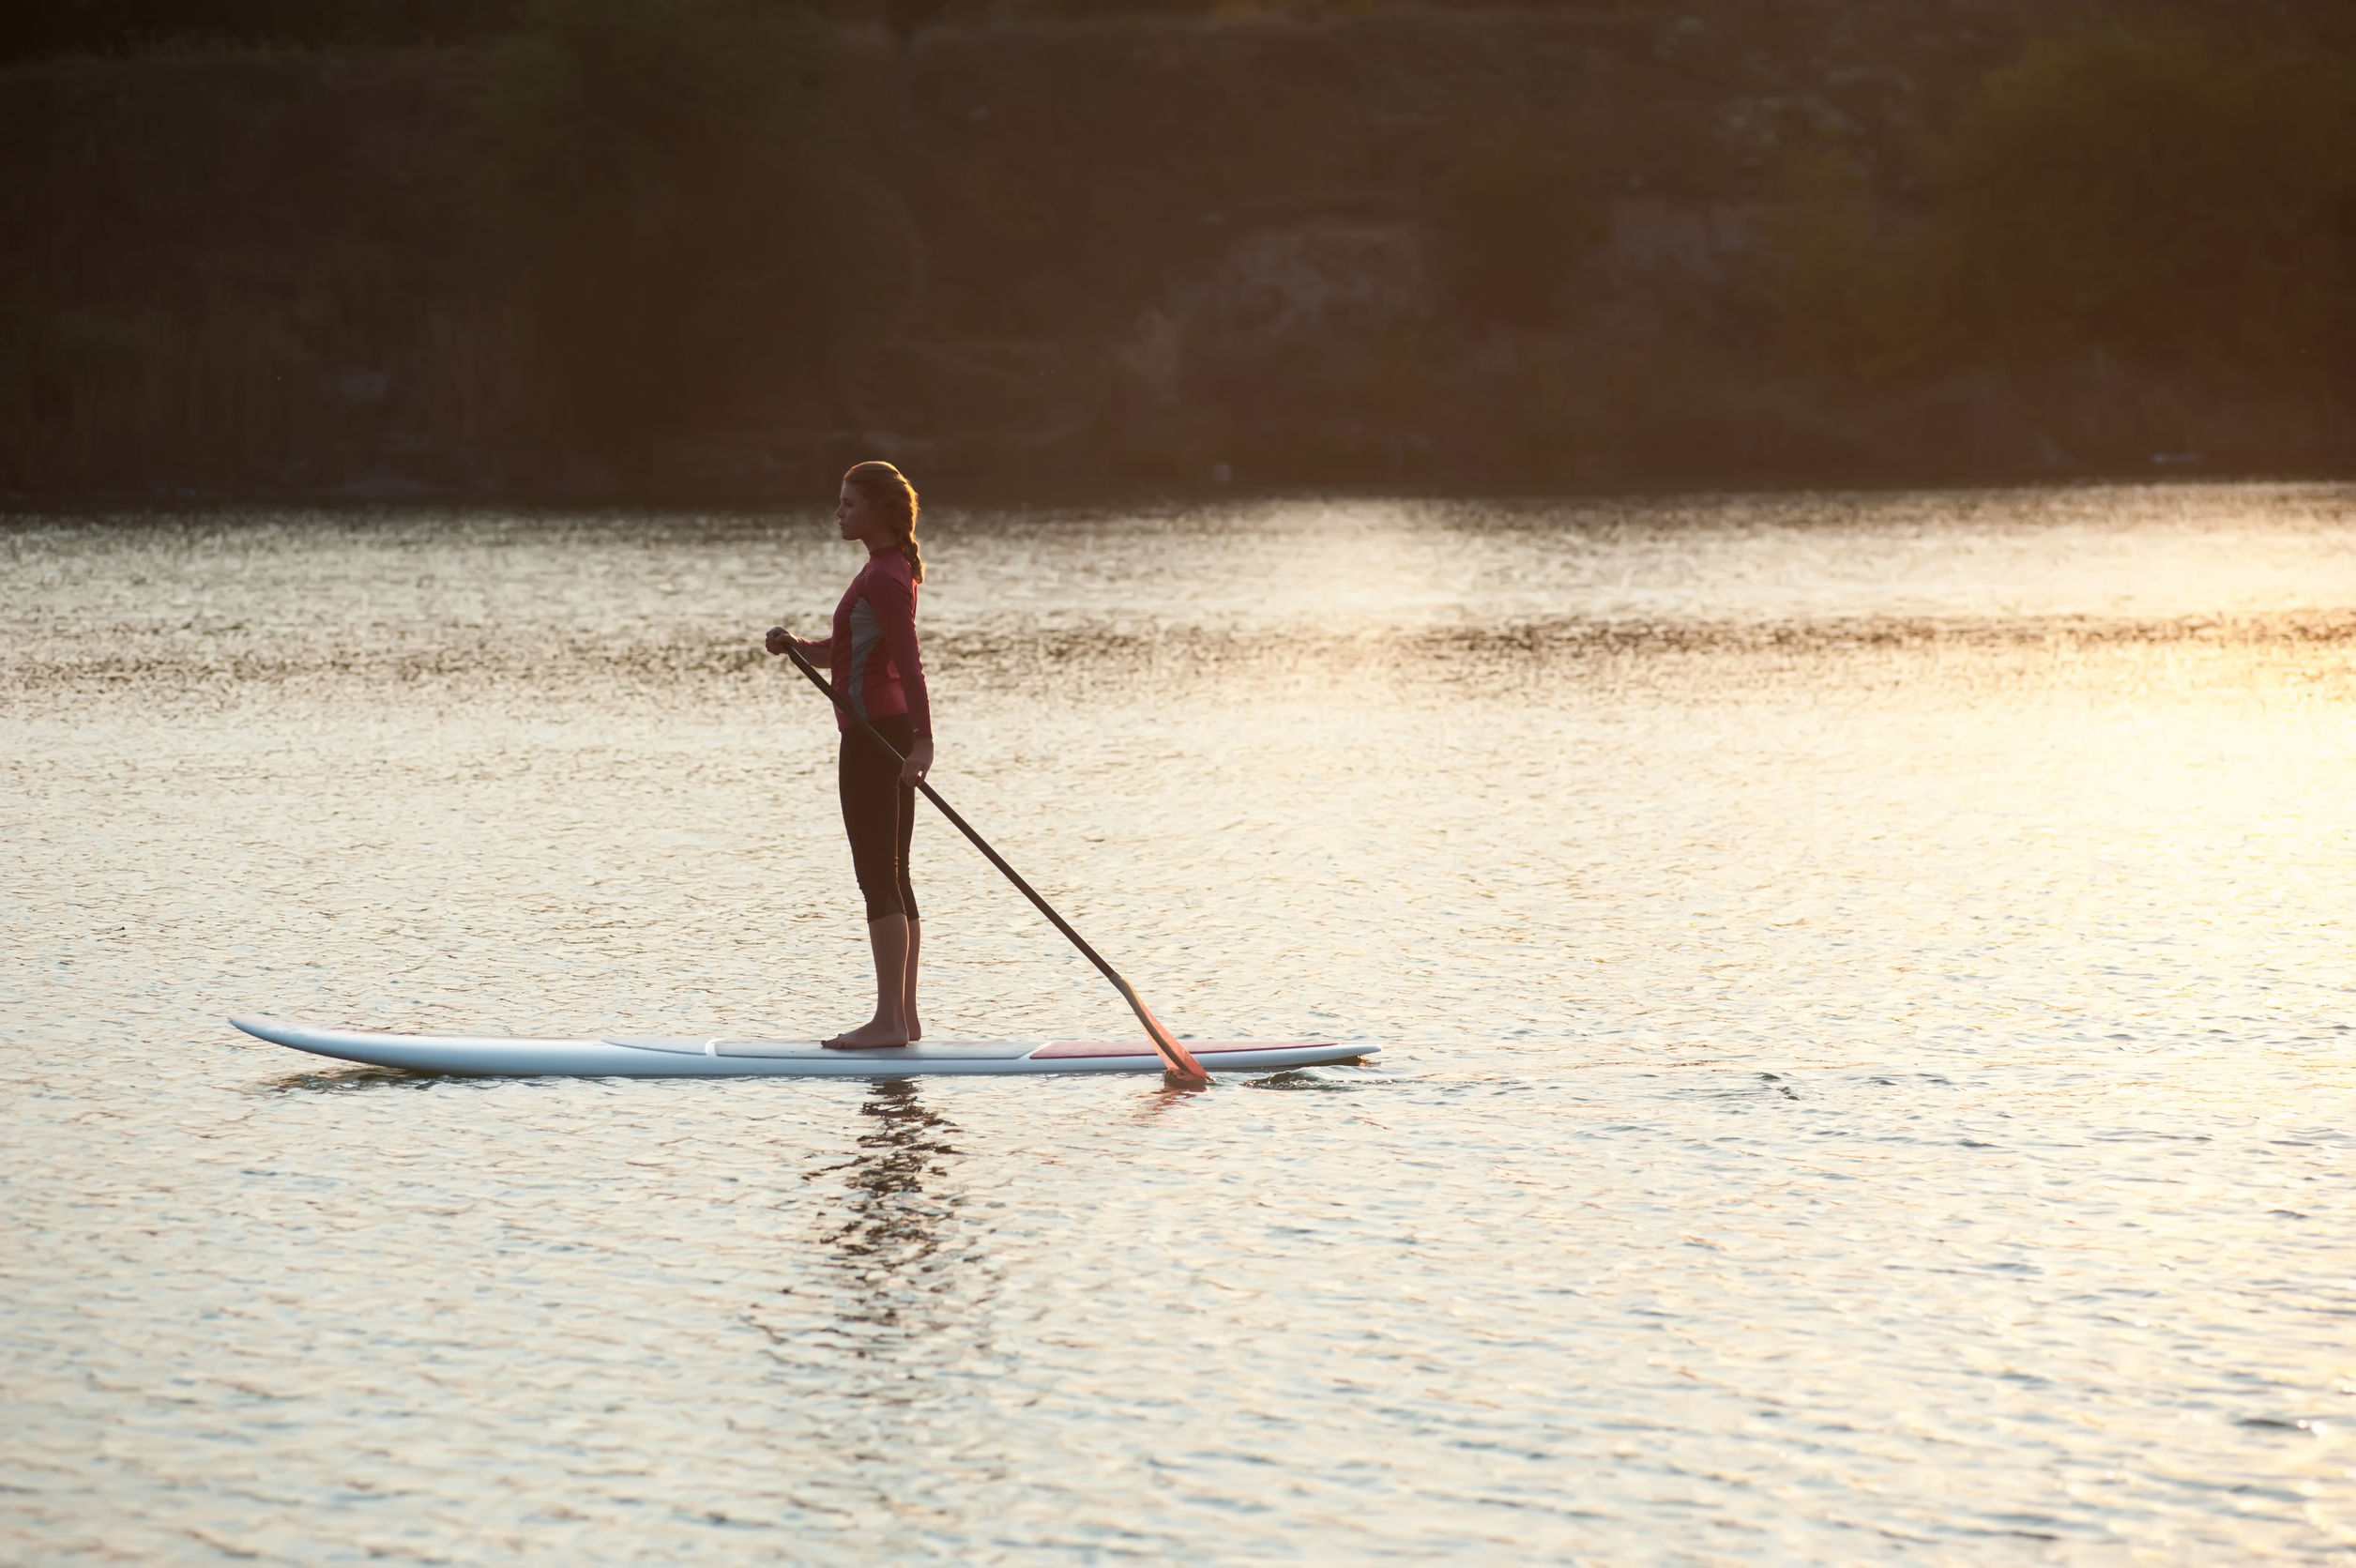 Young lady standing on a Stand up Paddle Board in the water